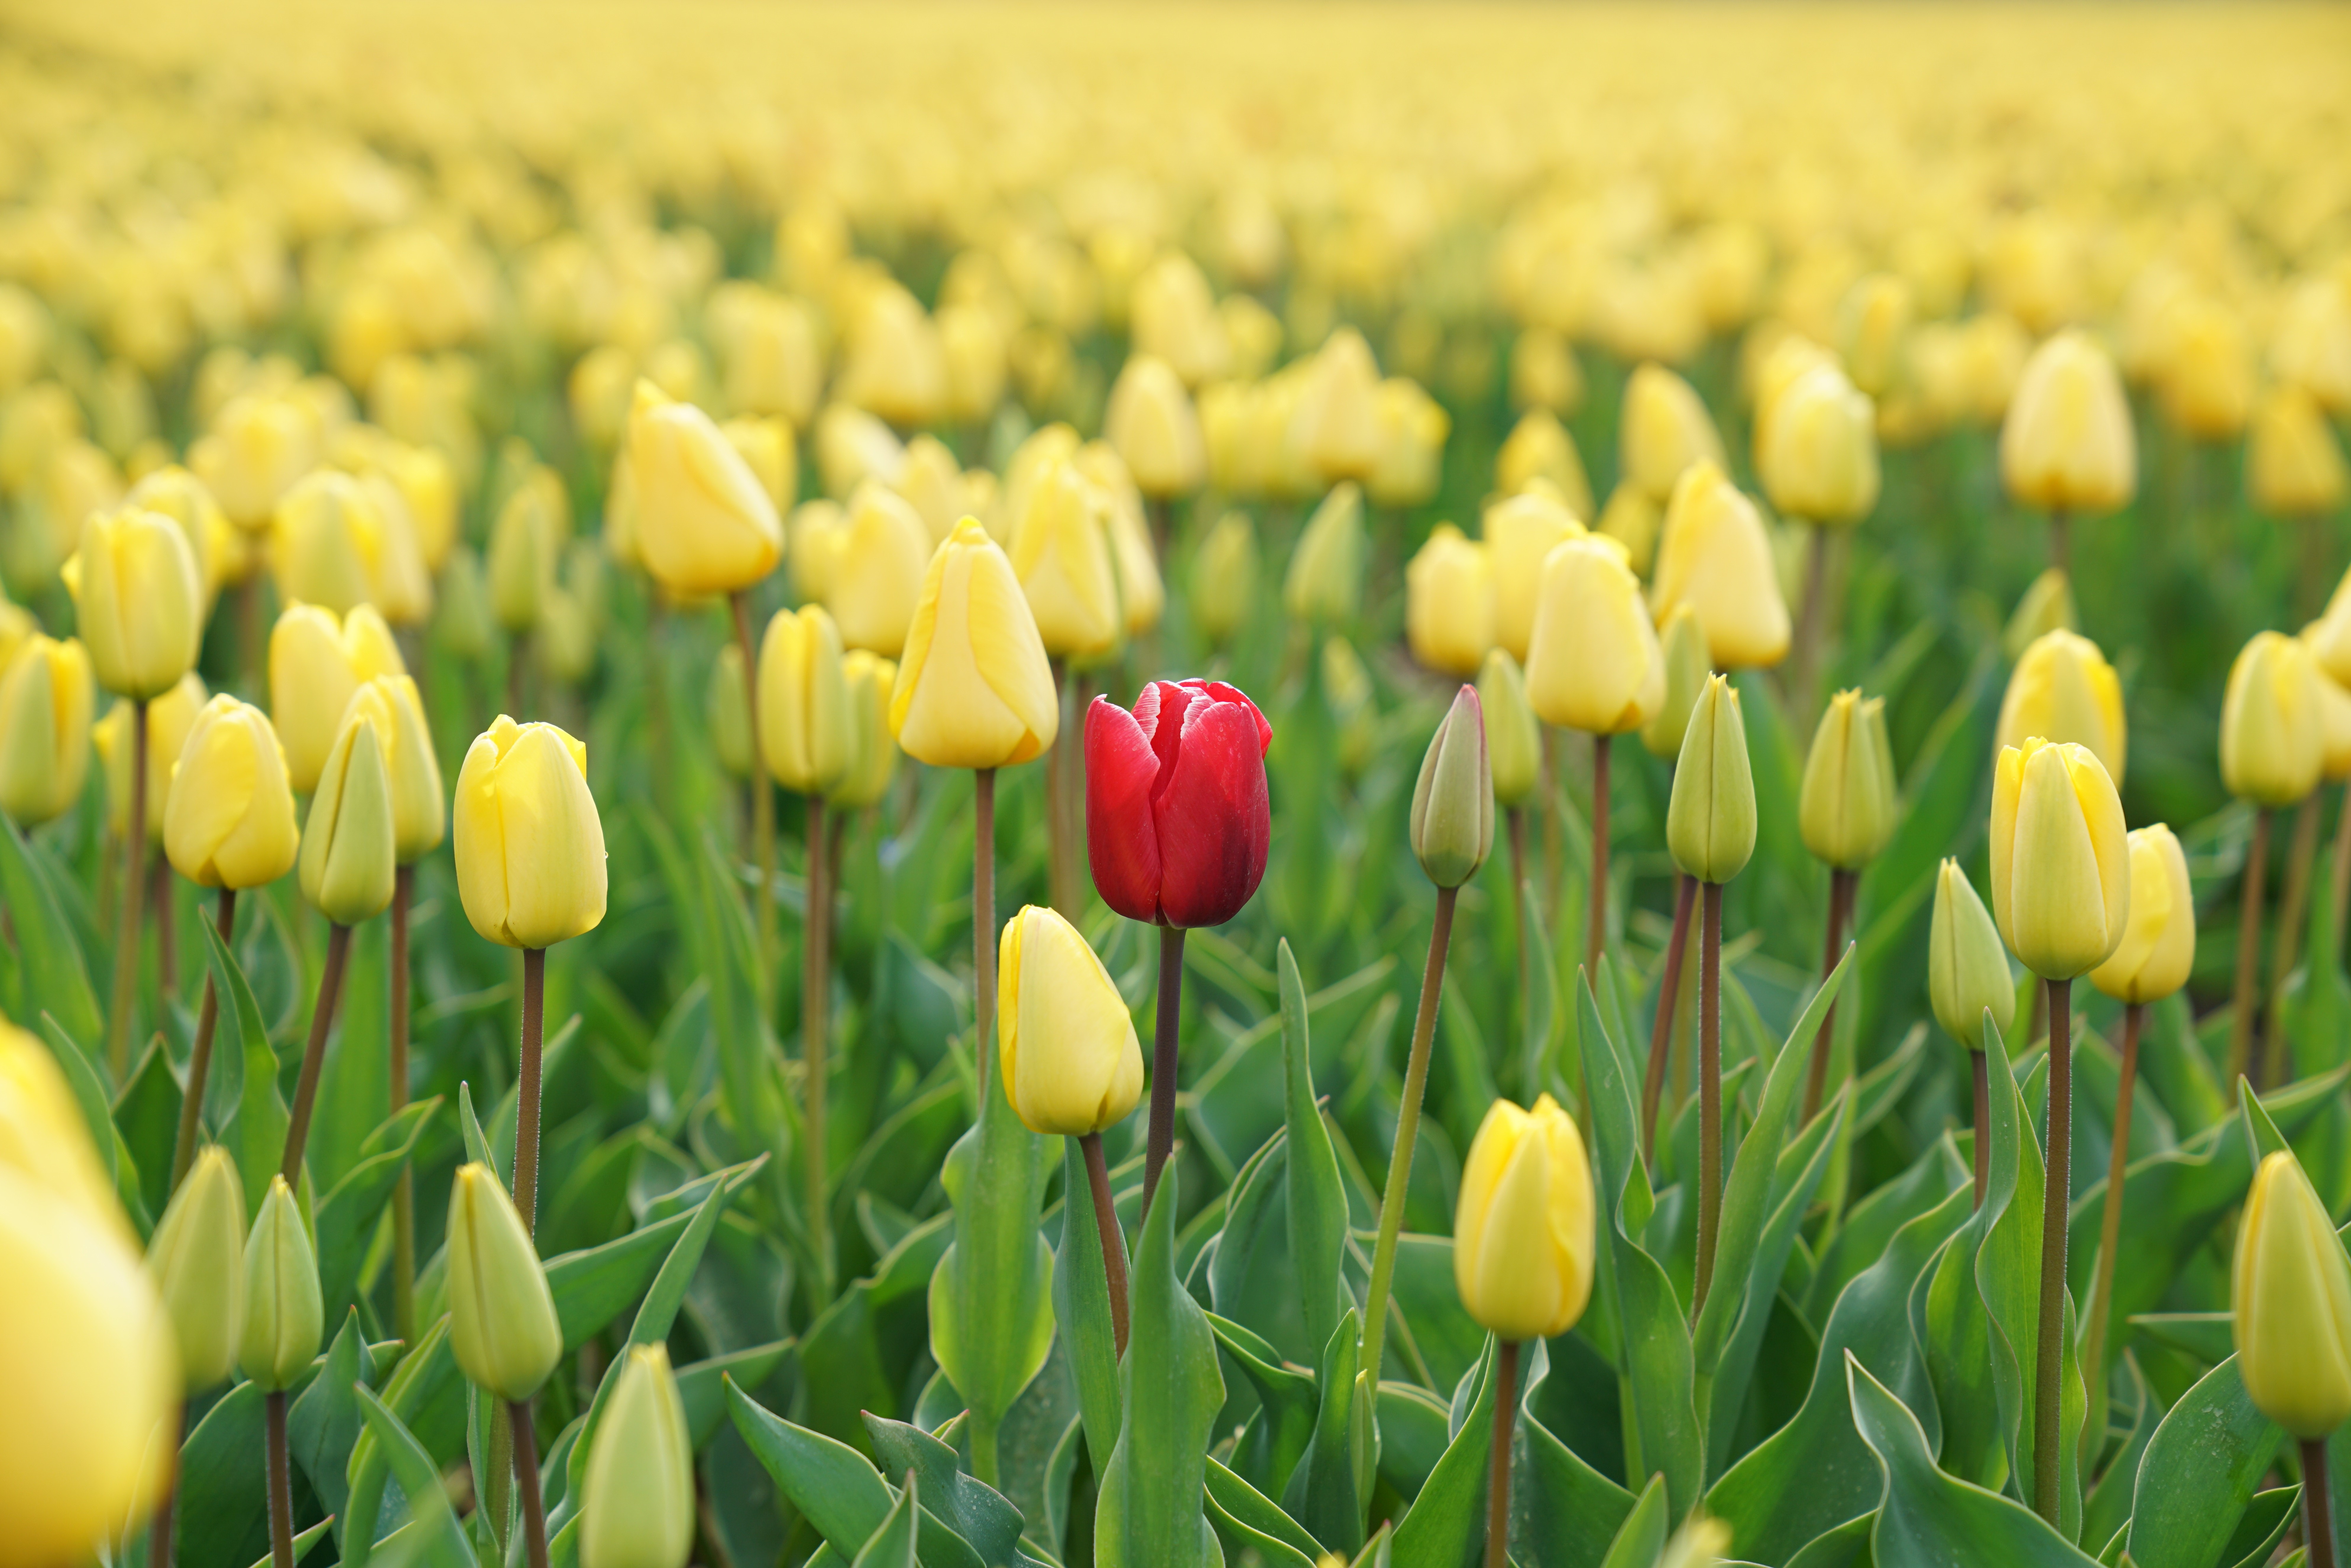 A field of yellow tulips, some open and some still closed, with one red tulip amongst them.